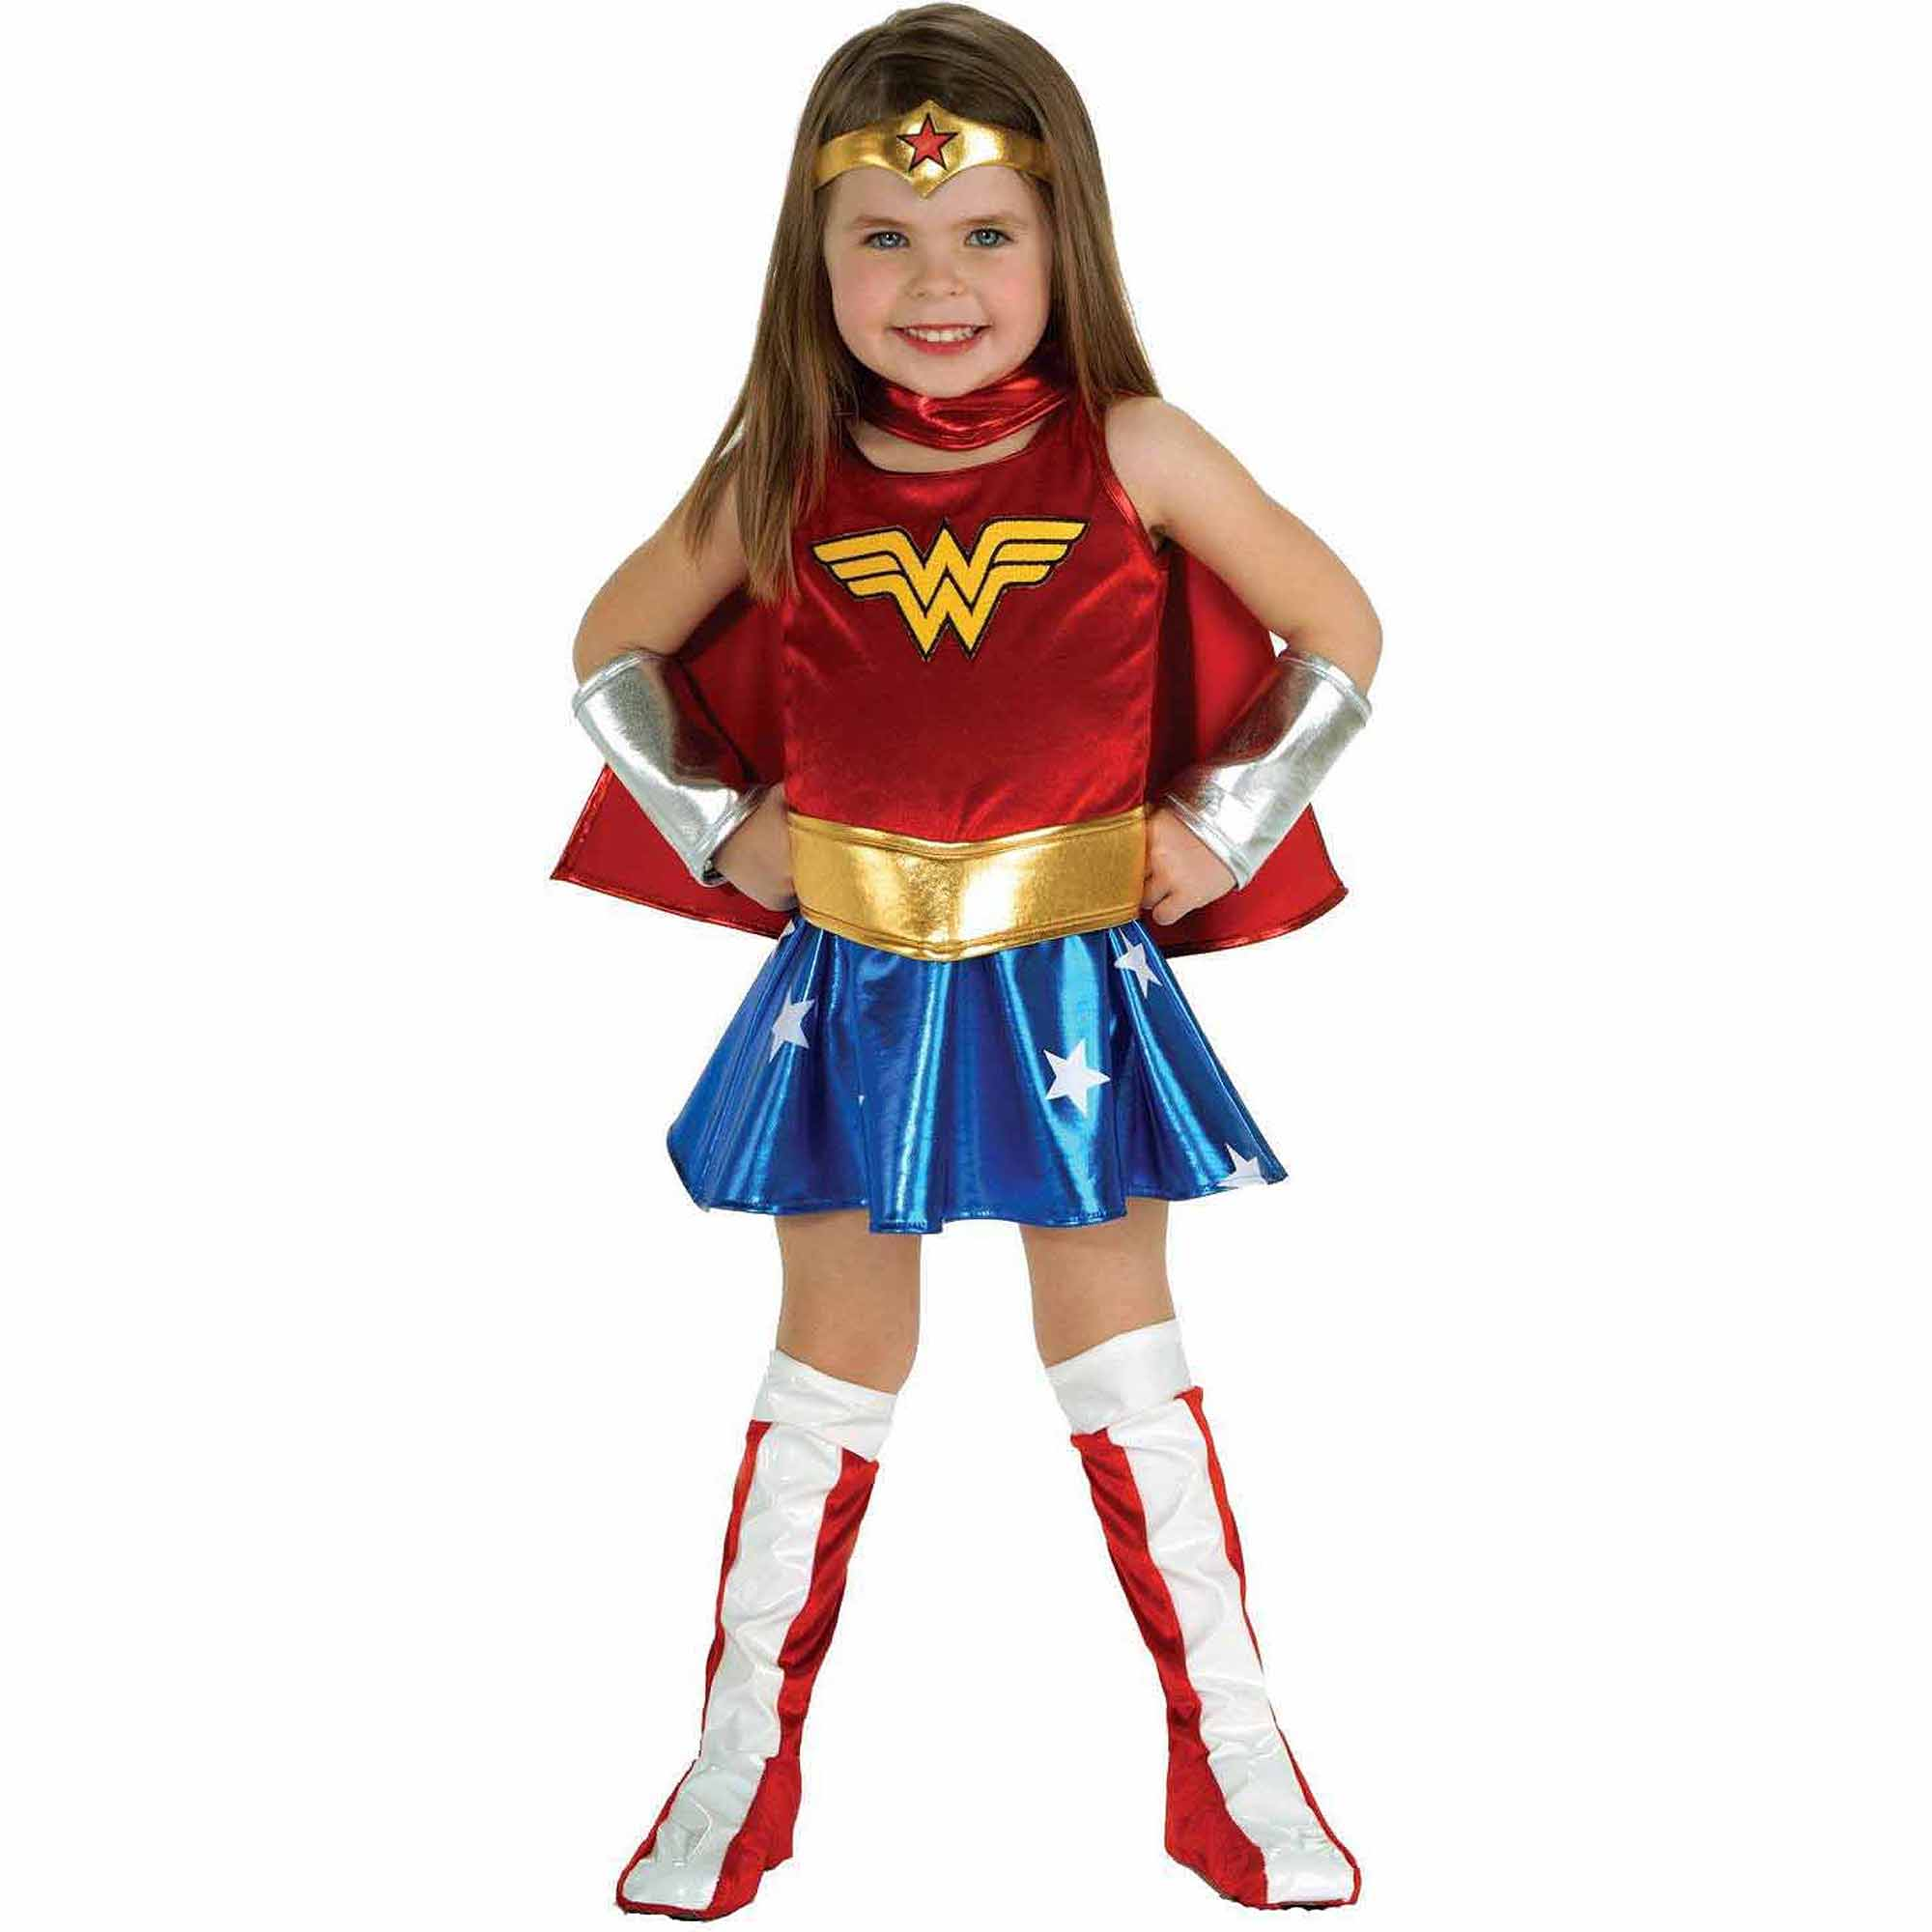 wonder woman toddler halloween costume size 3t 4t - Cheapest Place To Buy Halloween Costumes